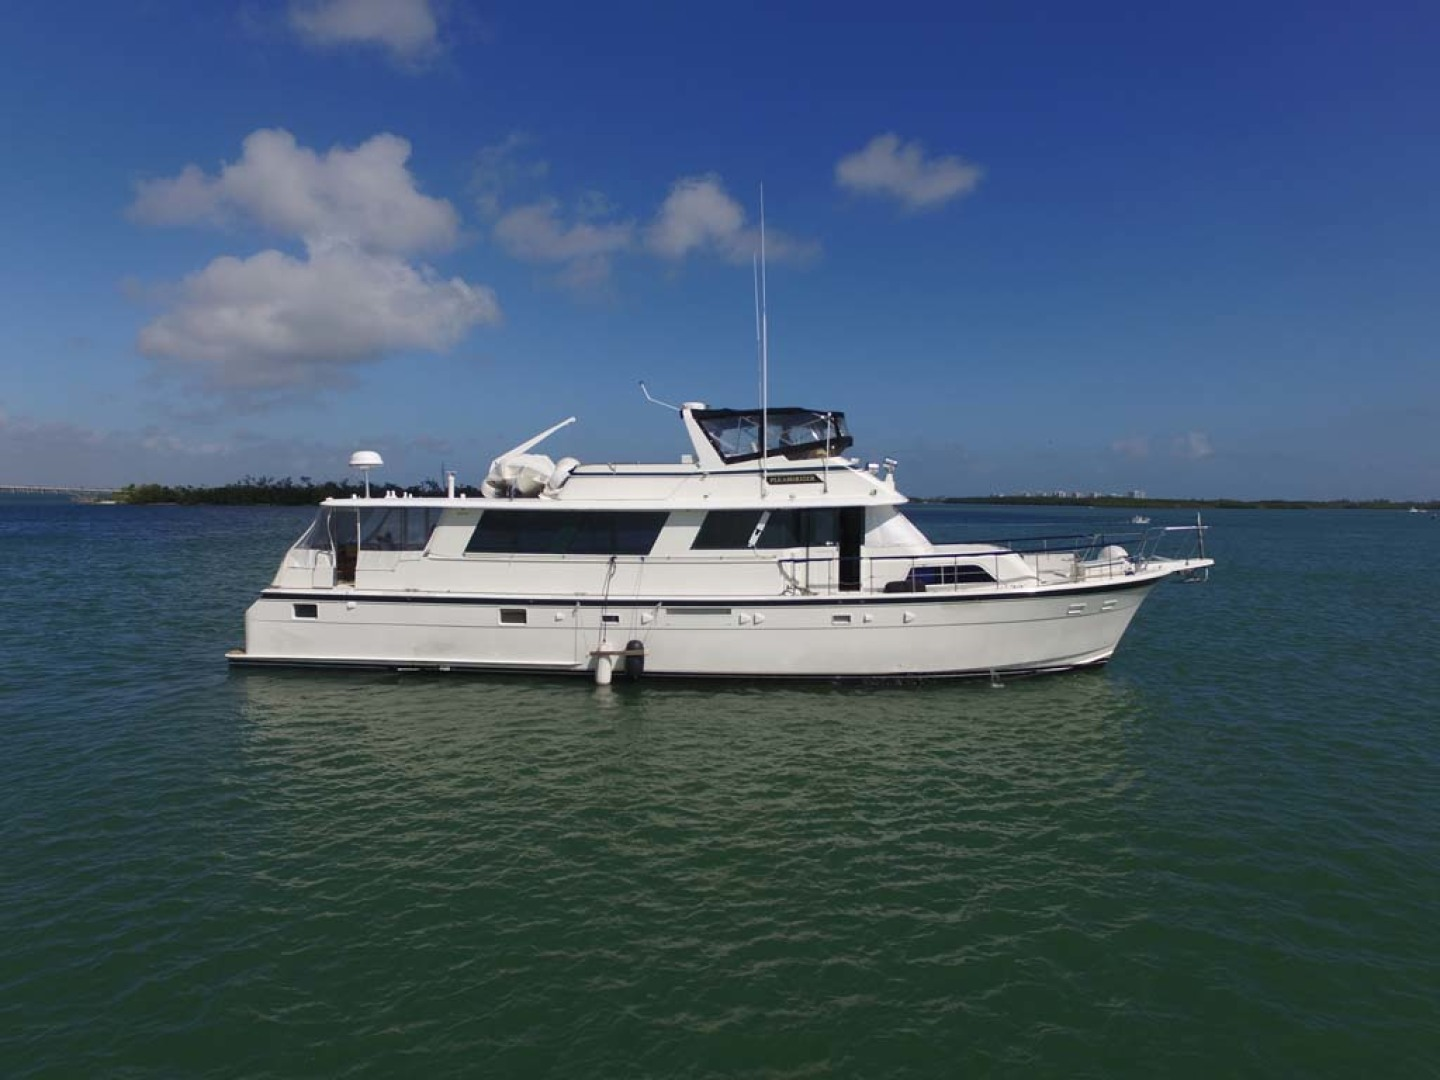 Hatteras-74 Motor Yacht 1981-Pleasurizer Fort Pierce-Florida-United States-Profile-1122237 | Thumbnail